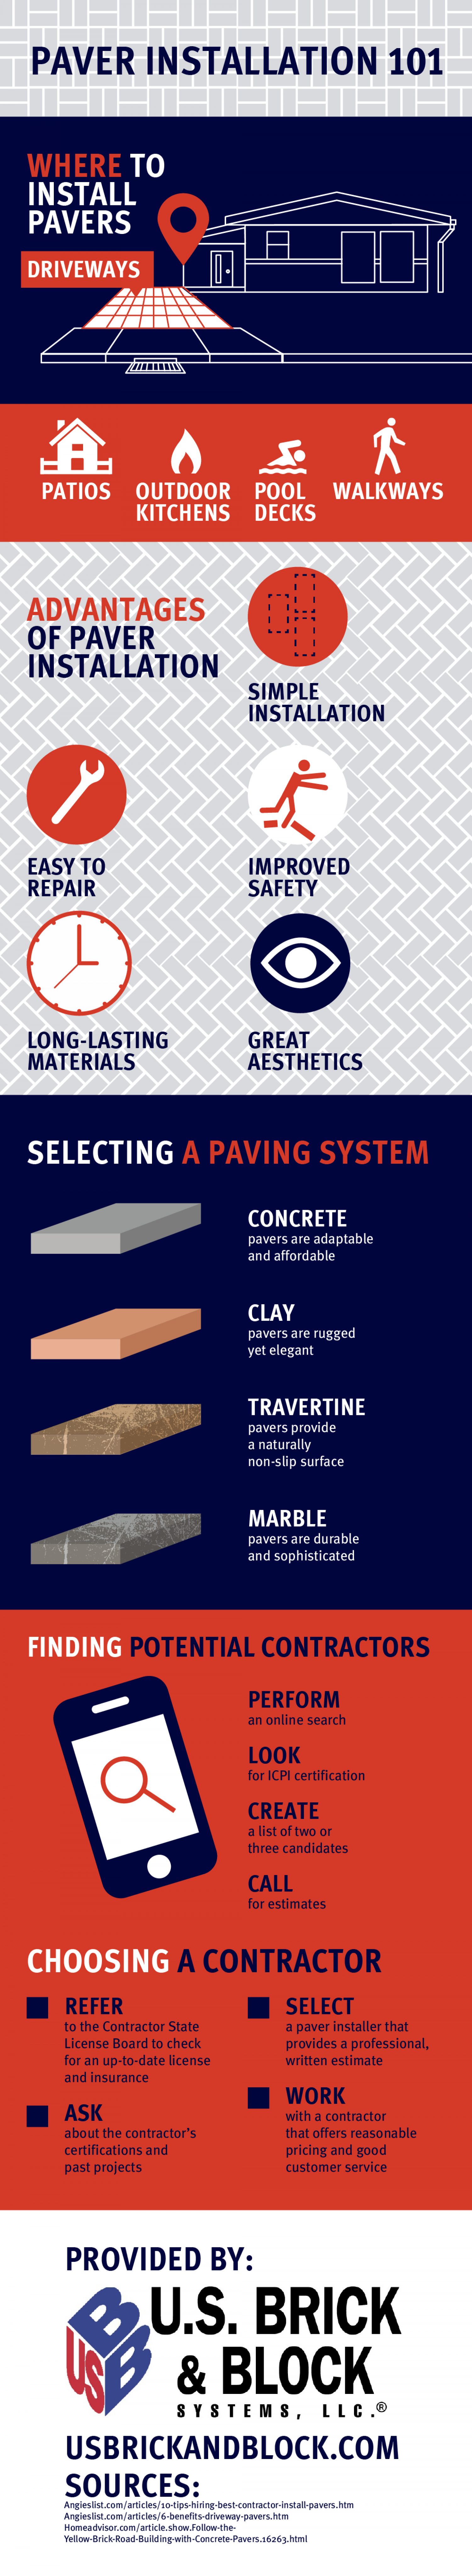 Paver Installation 101 Infographic